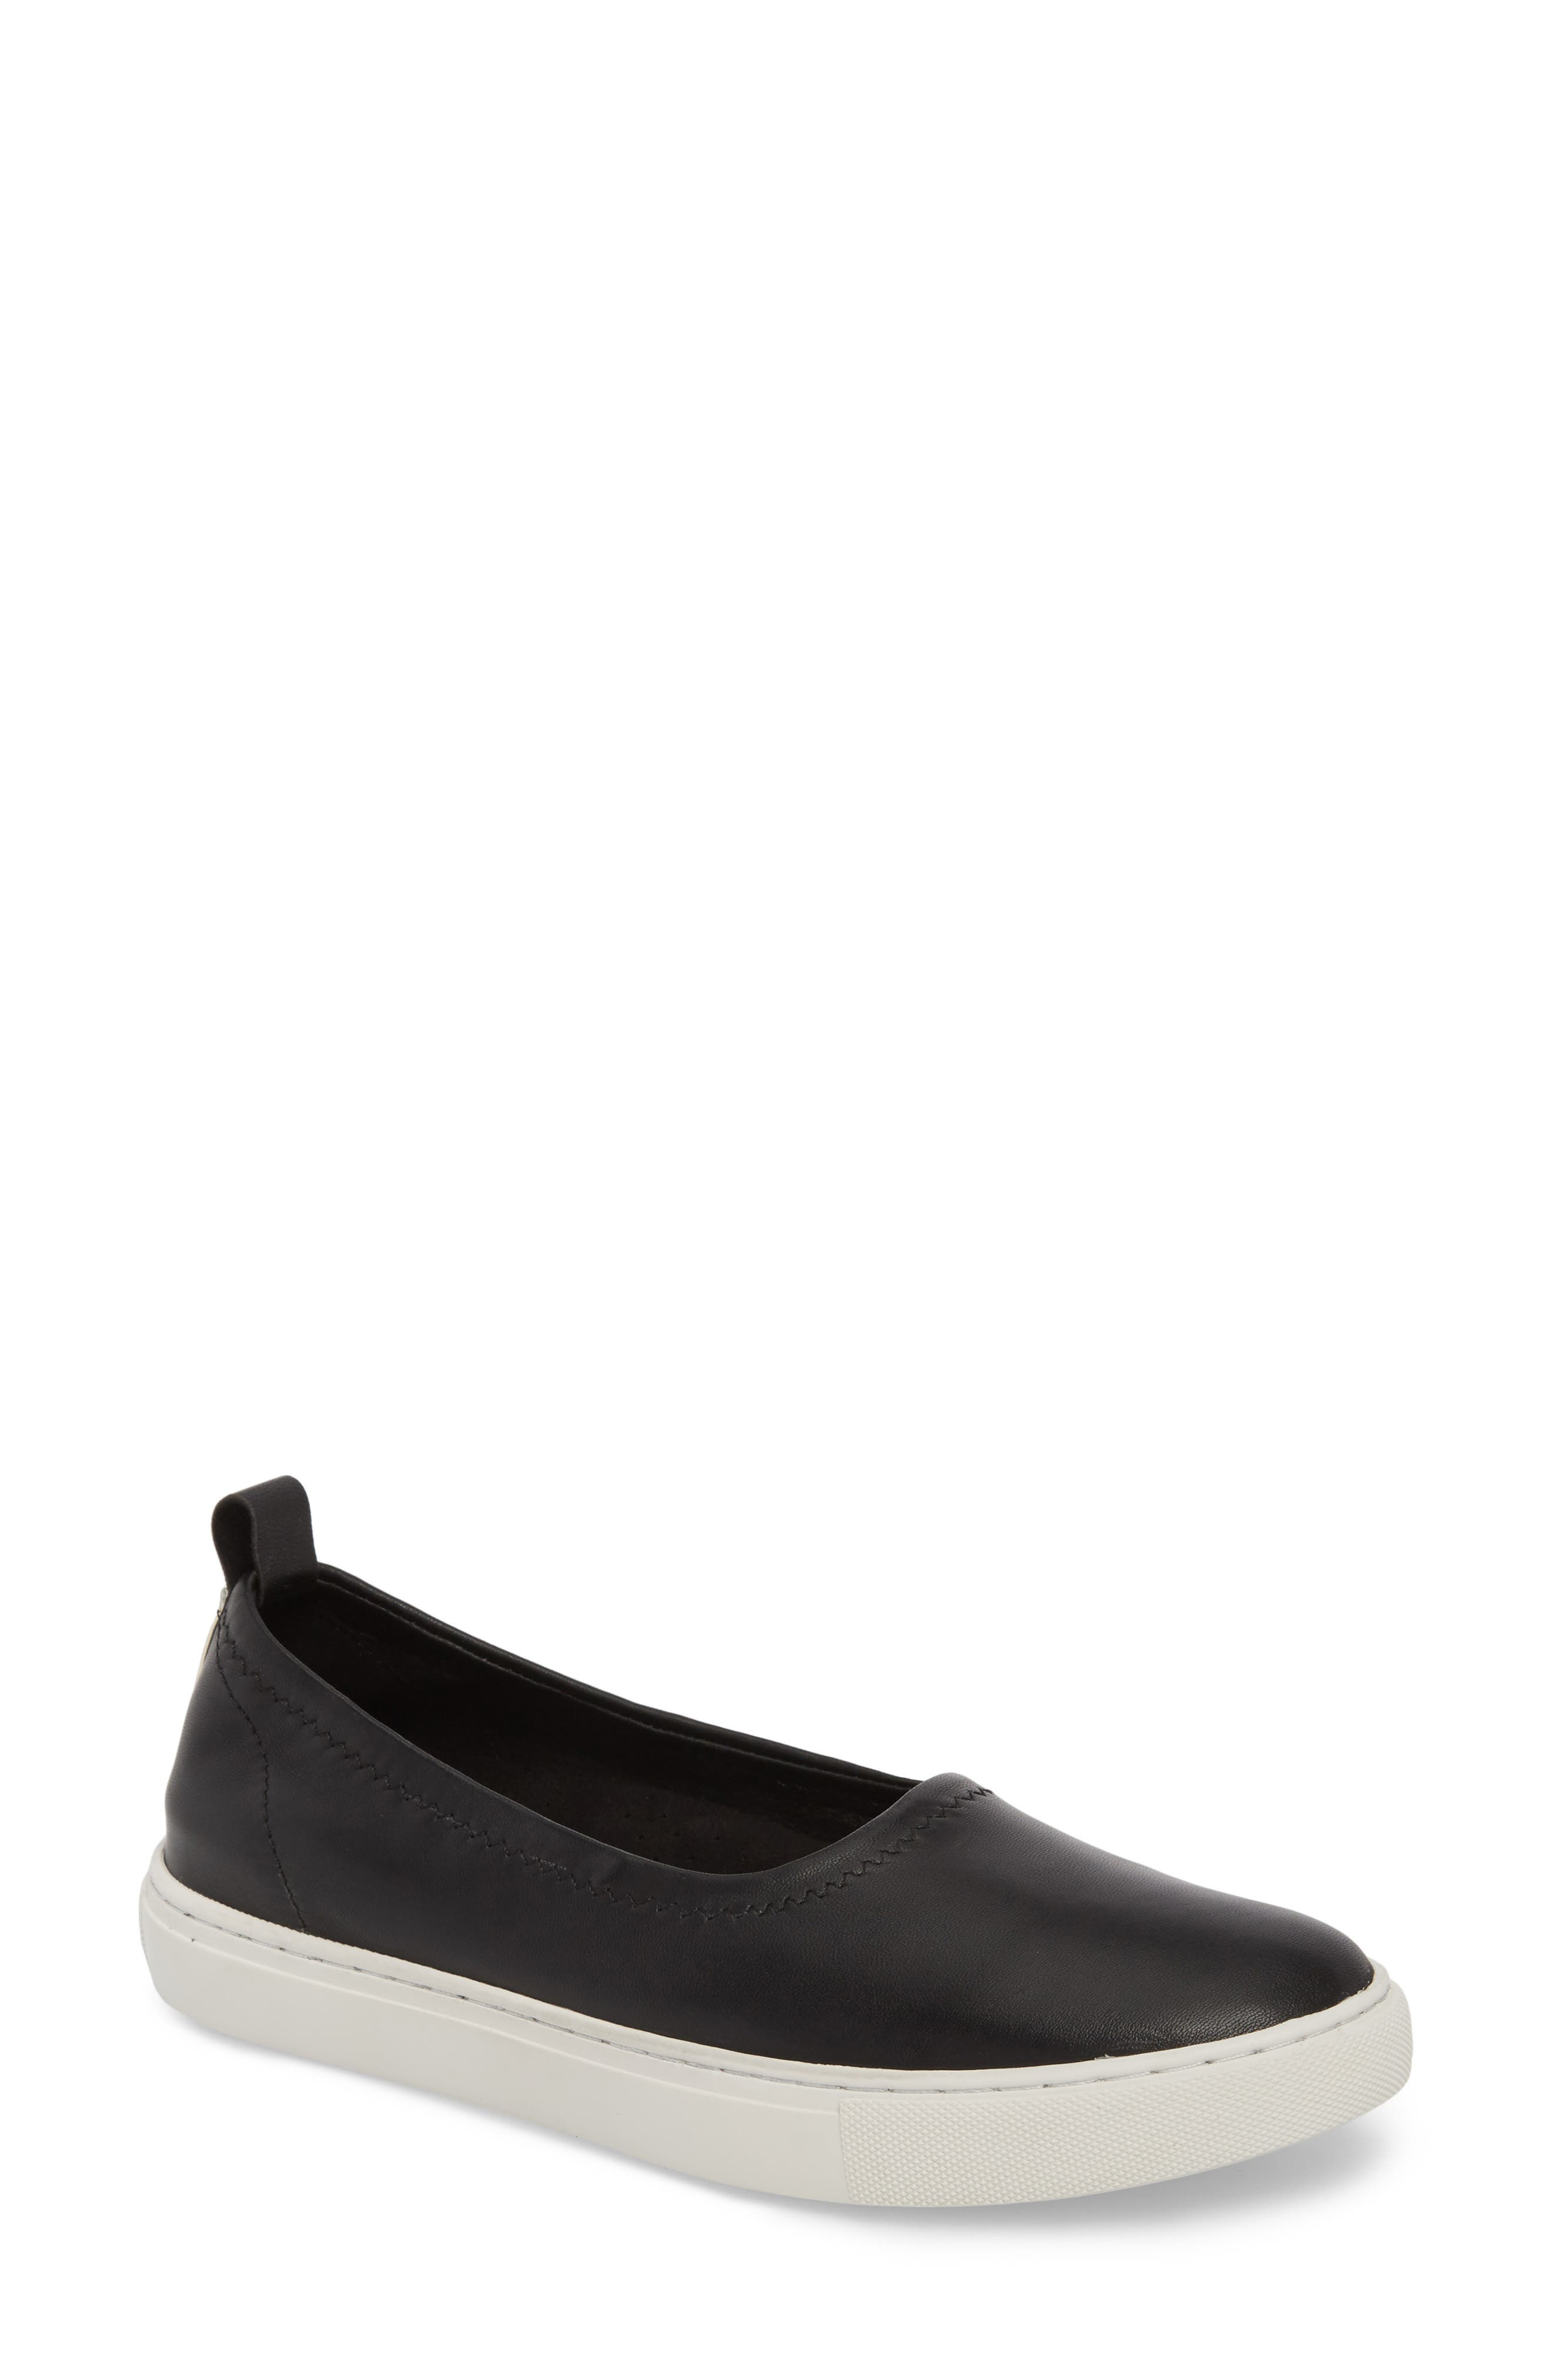 Kam Techni-Cole Ballet Flat,                             Main thumbnail 1, color,                             Black Leather